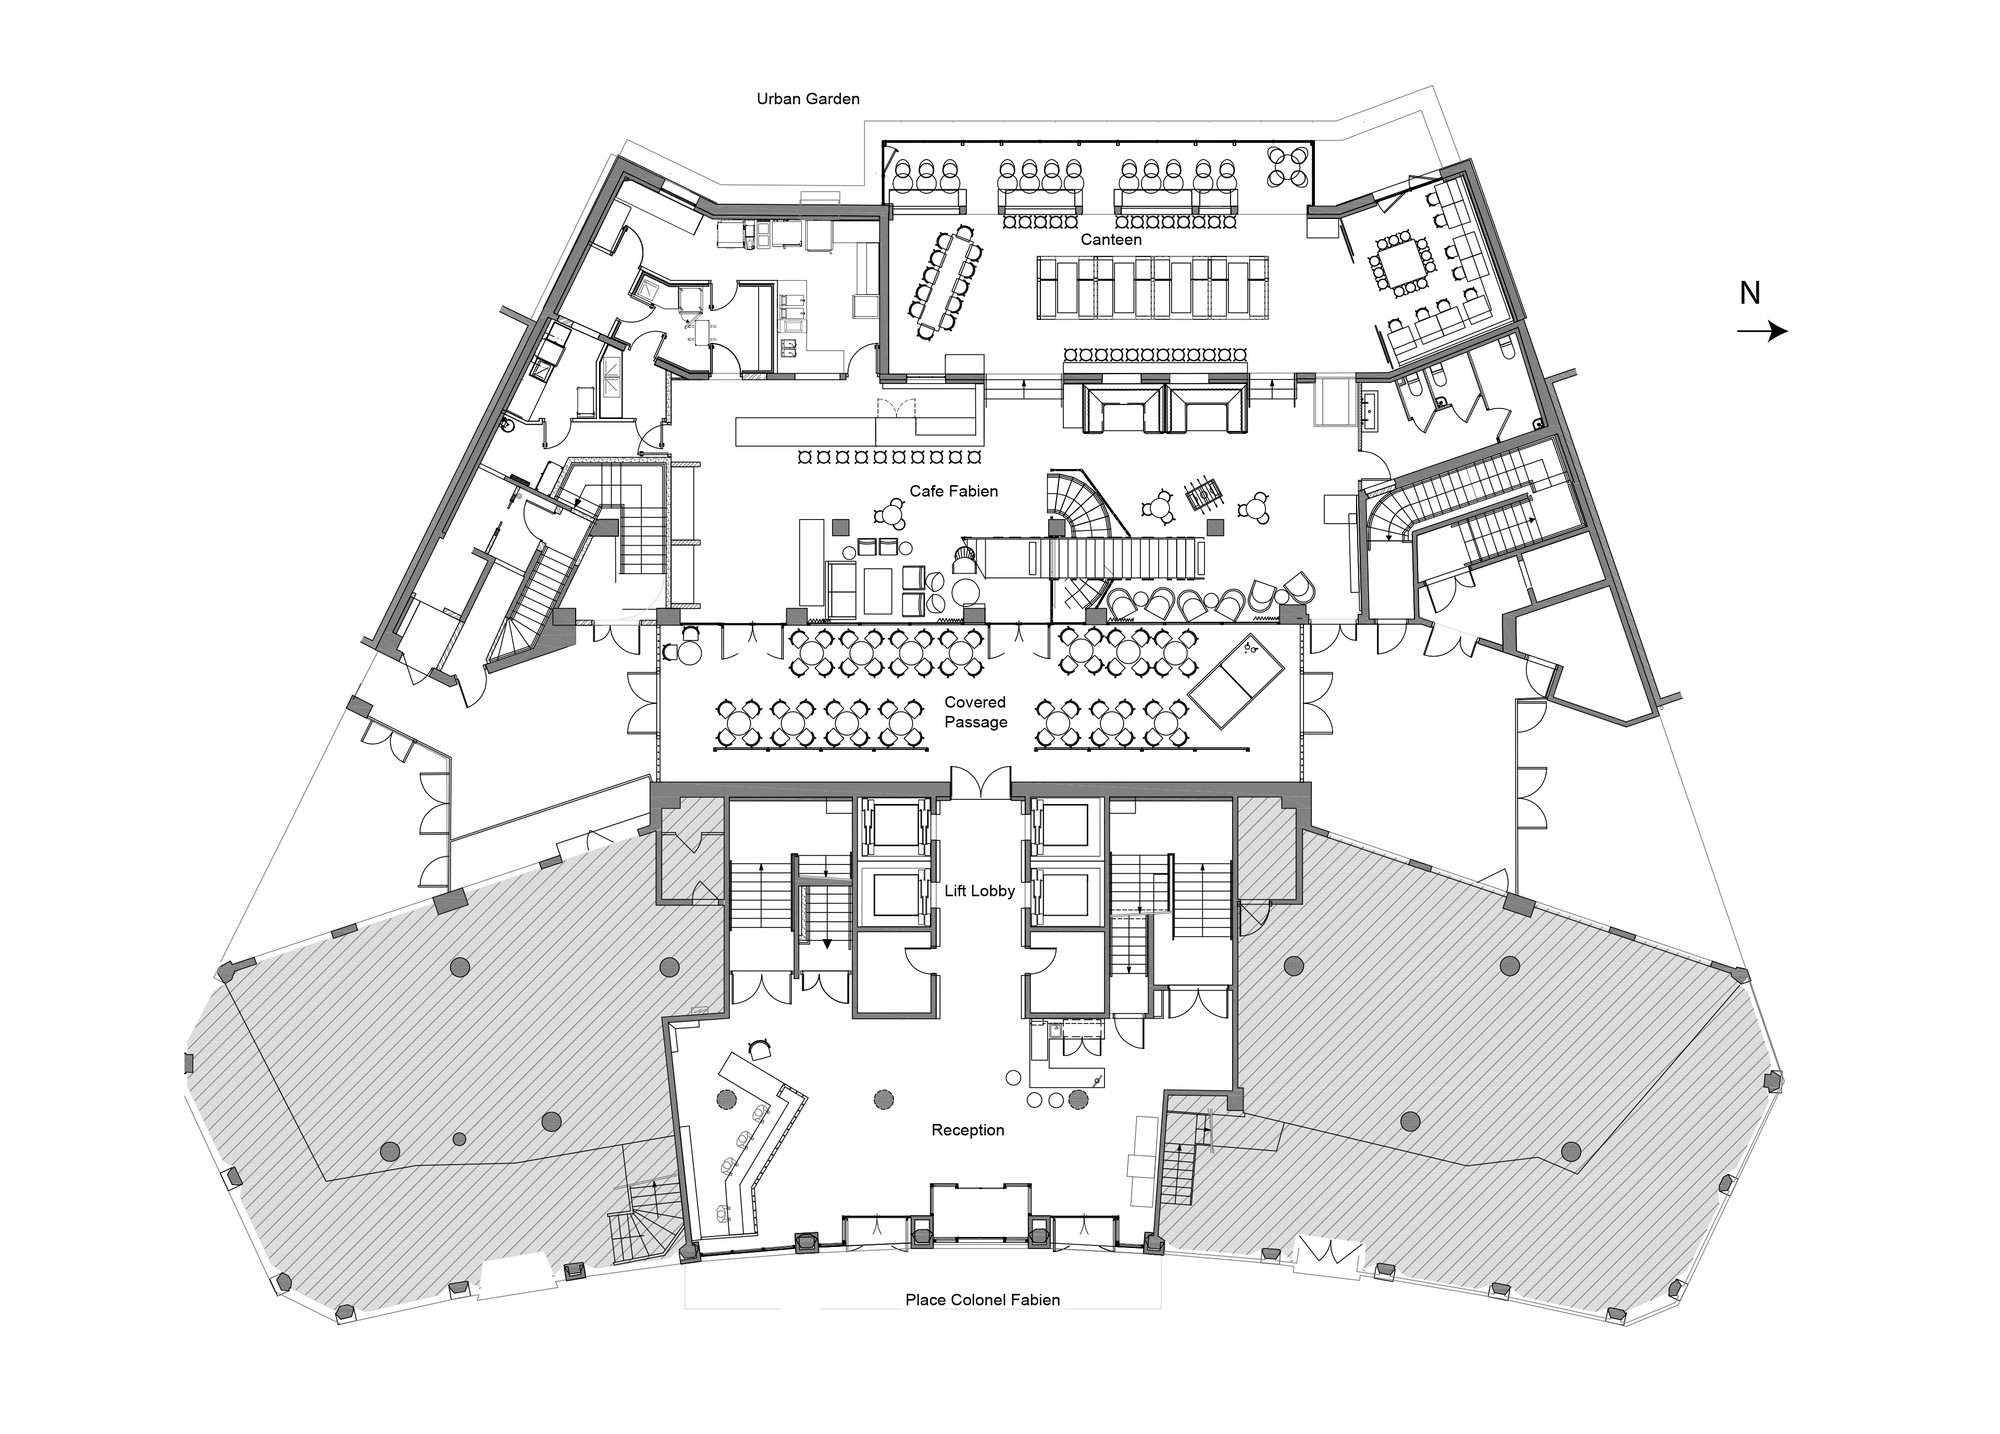 Generator Paris / DesignAgency. 22 / 24. Ground Floor Plan